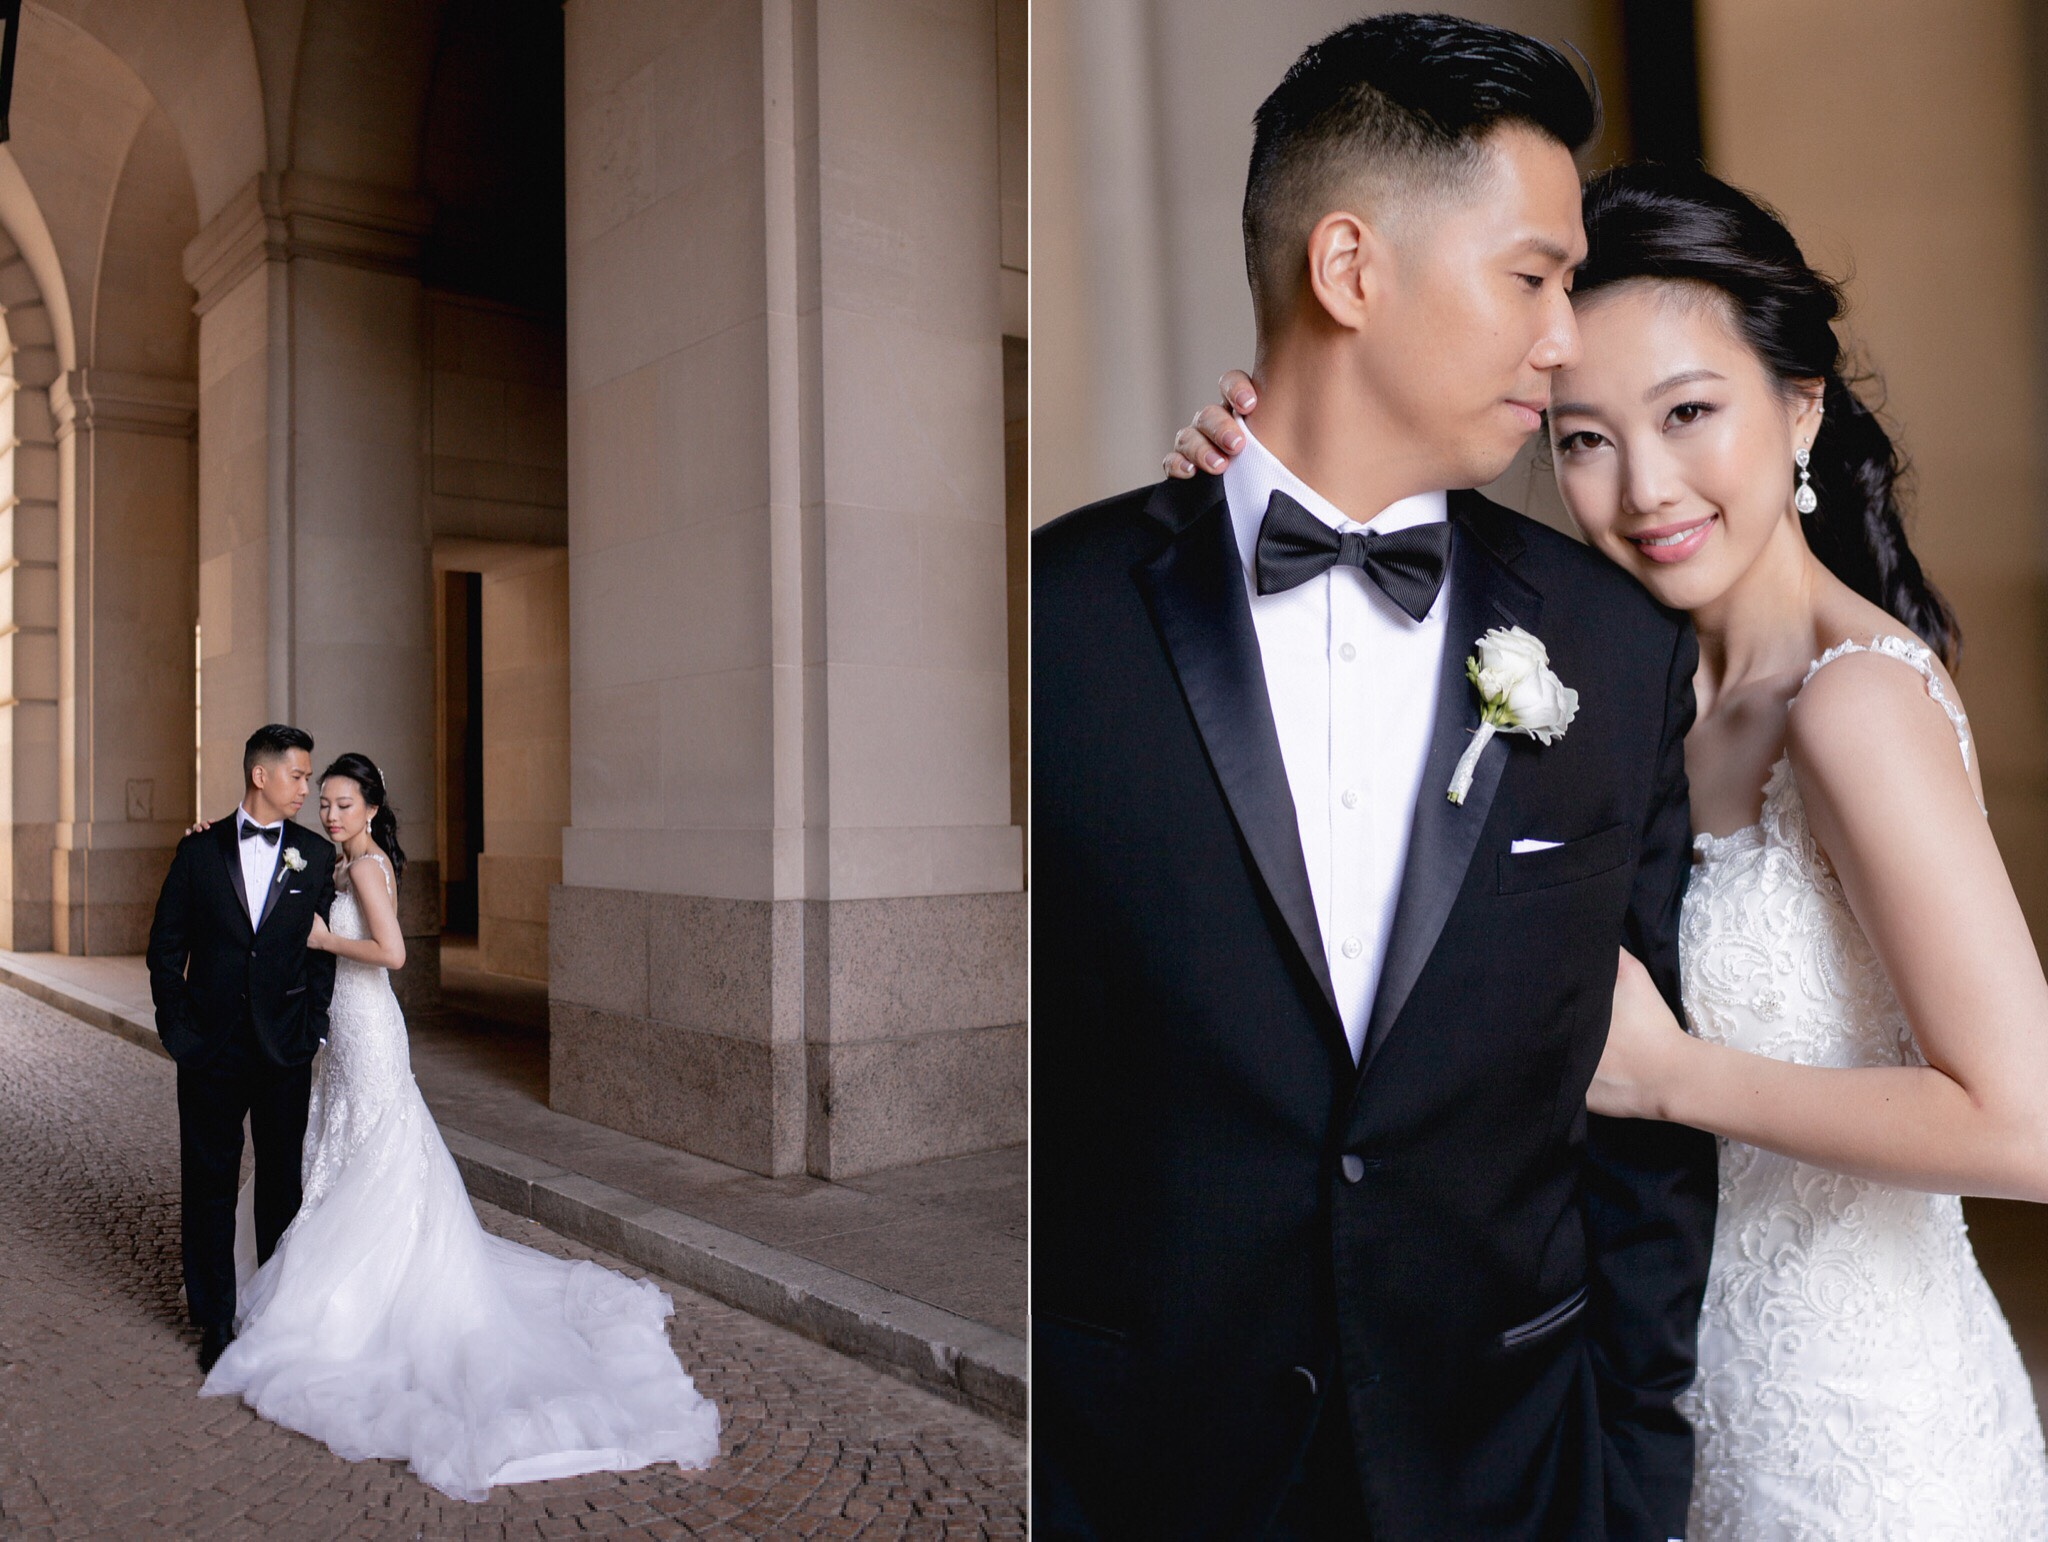 Tammy + Peter | Washington, District of Columbia | Fairmont